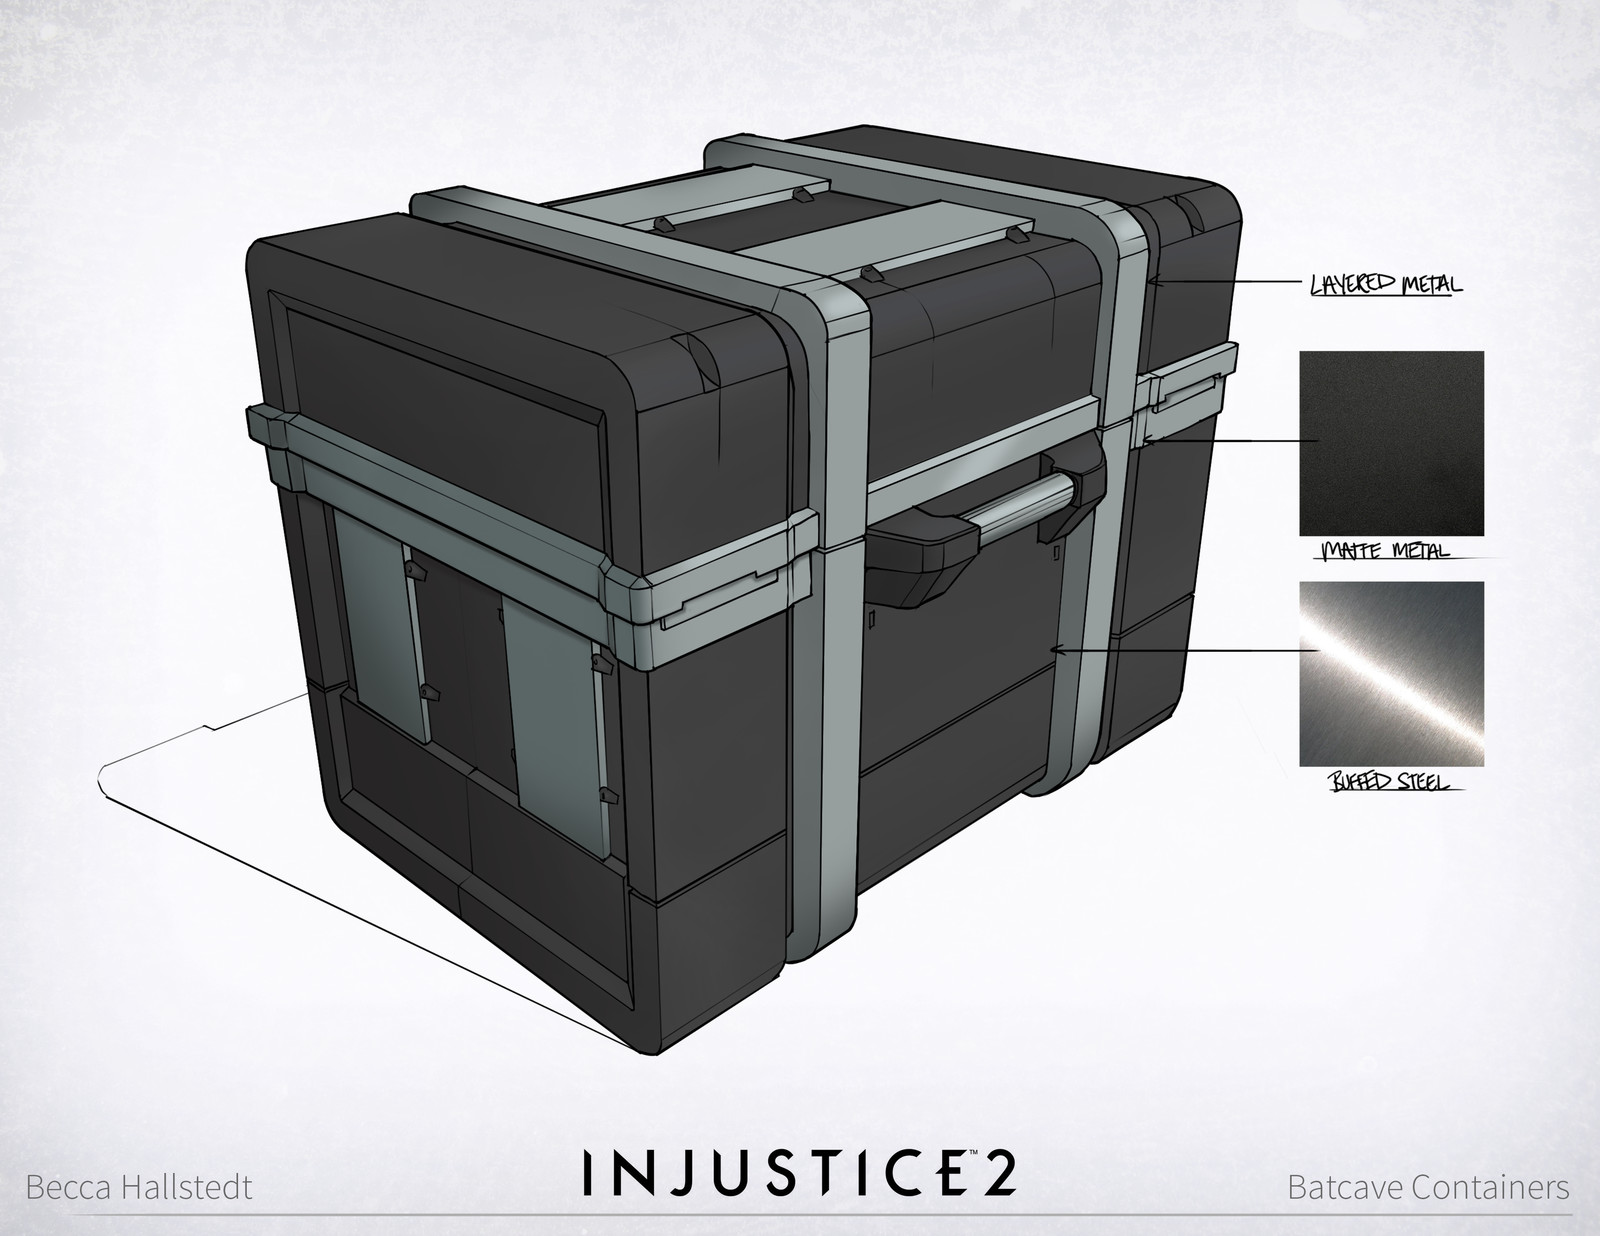 Injustice 2: Batcave Containers